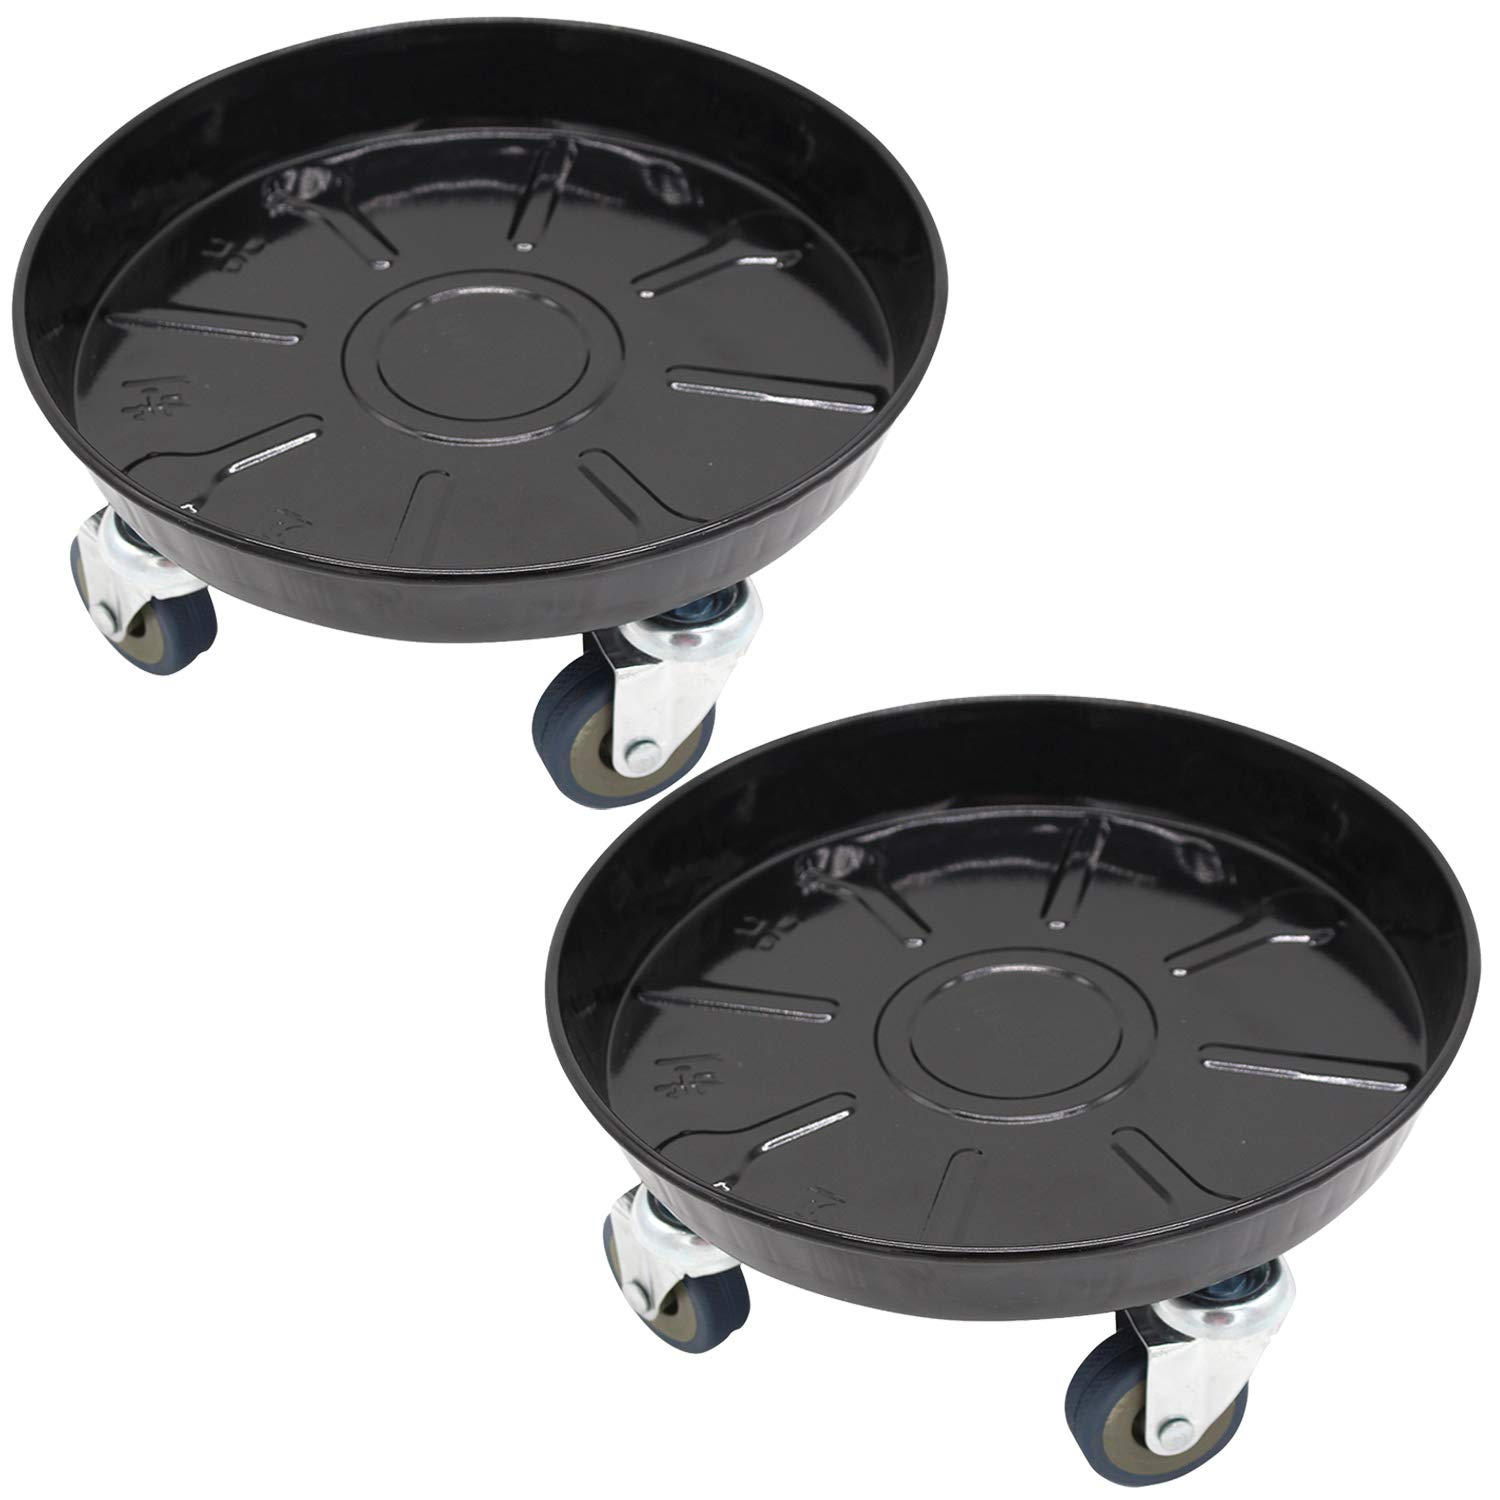 13 inch Heeler Metal Plant Caddies Plant Tray Caddy on Wheels Indoor Outdoor Home Garden Tools Planter Rolling Tray Black 2 Pcs